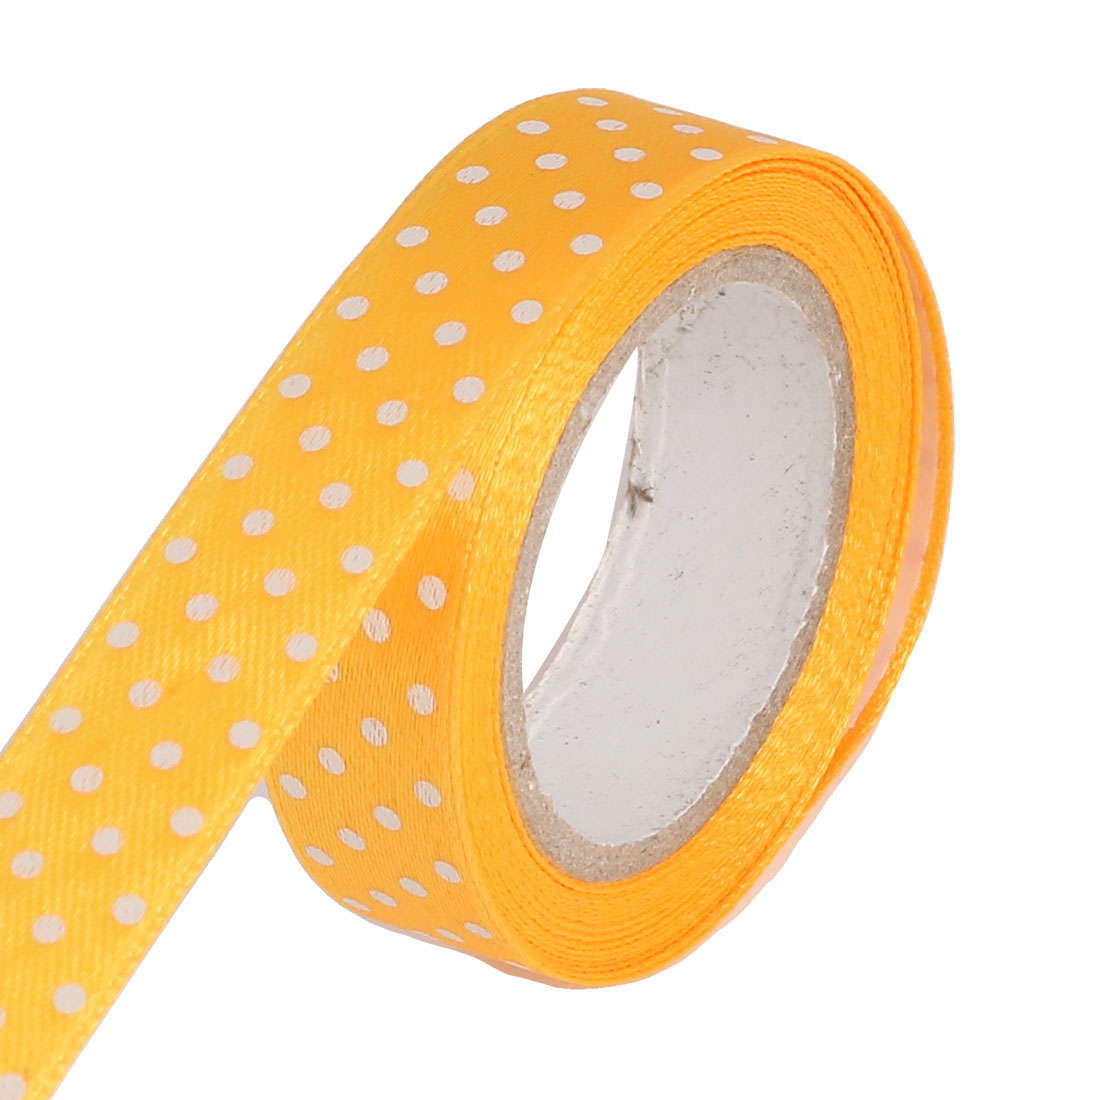 Dots Pattern Crafting Scrapbooking Decorative Sticky Masking Tape Roll Yellow